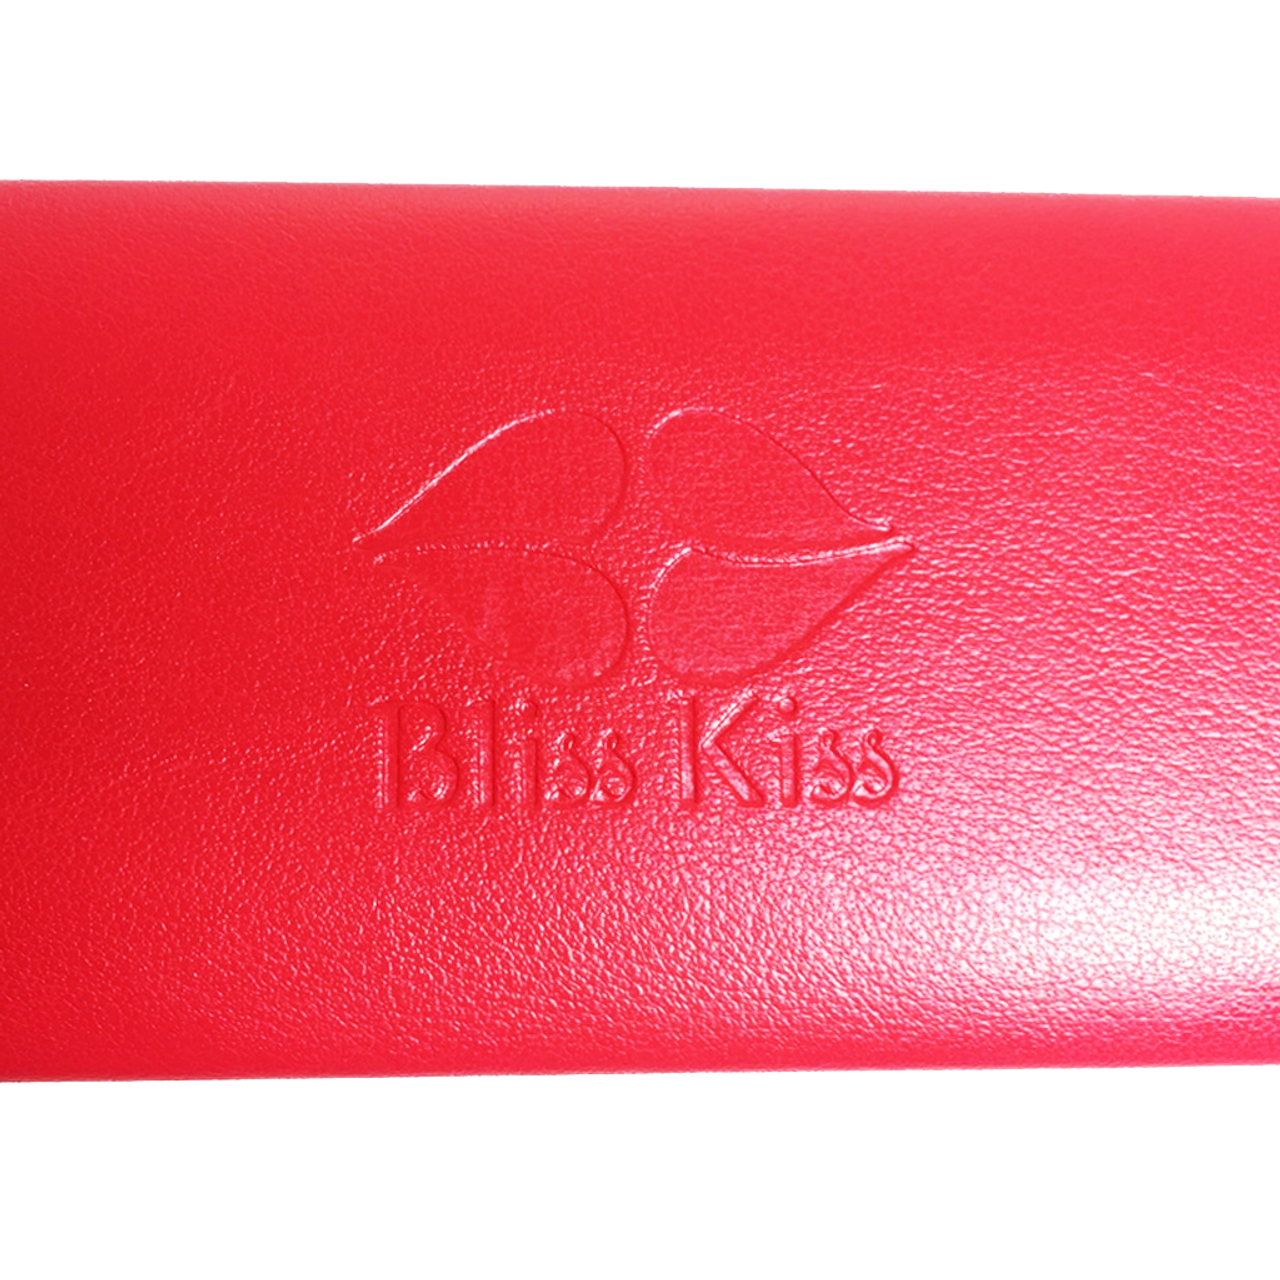 "Stylish Bliss Kiss™ Carrying Case - Keep all your tools safely in one spot. Fashionable, portable, durable. Your Bliss Kiss™ Carrying Case is a gorgeous red faux leather with the Bliss Kiss™ logo embossed on top. You'll quickly wonder how you ever lived without it! Dimensions: 6"" wide x 1"" tall x 2.25"" deep."